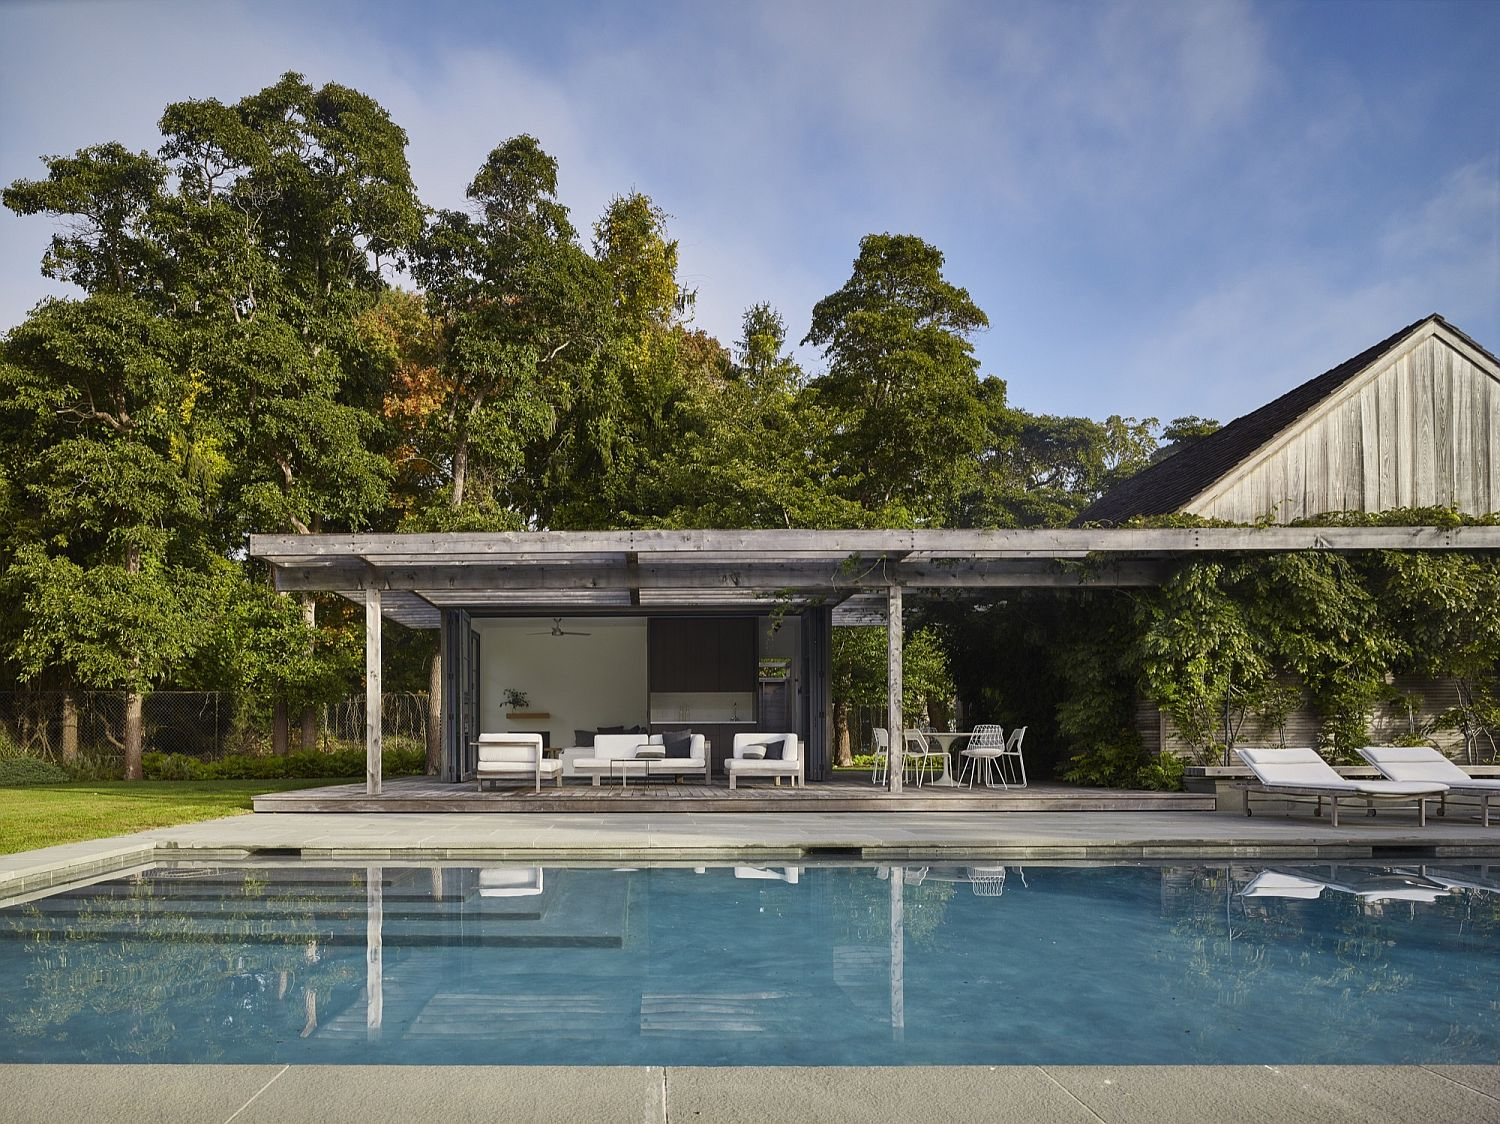 Elegant modern pool house with plenty of outdoor relaxation space